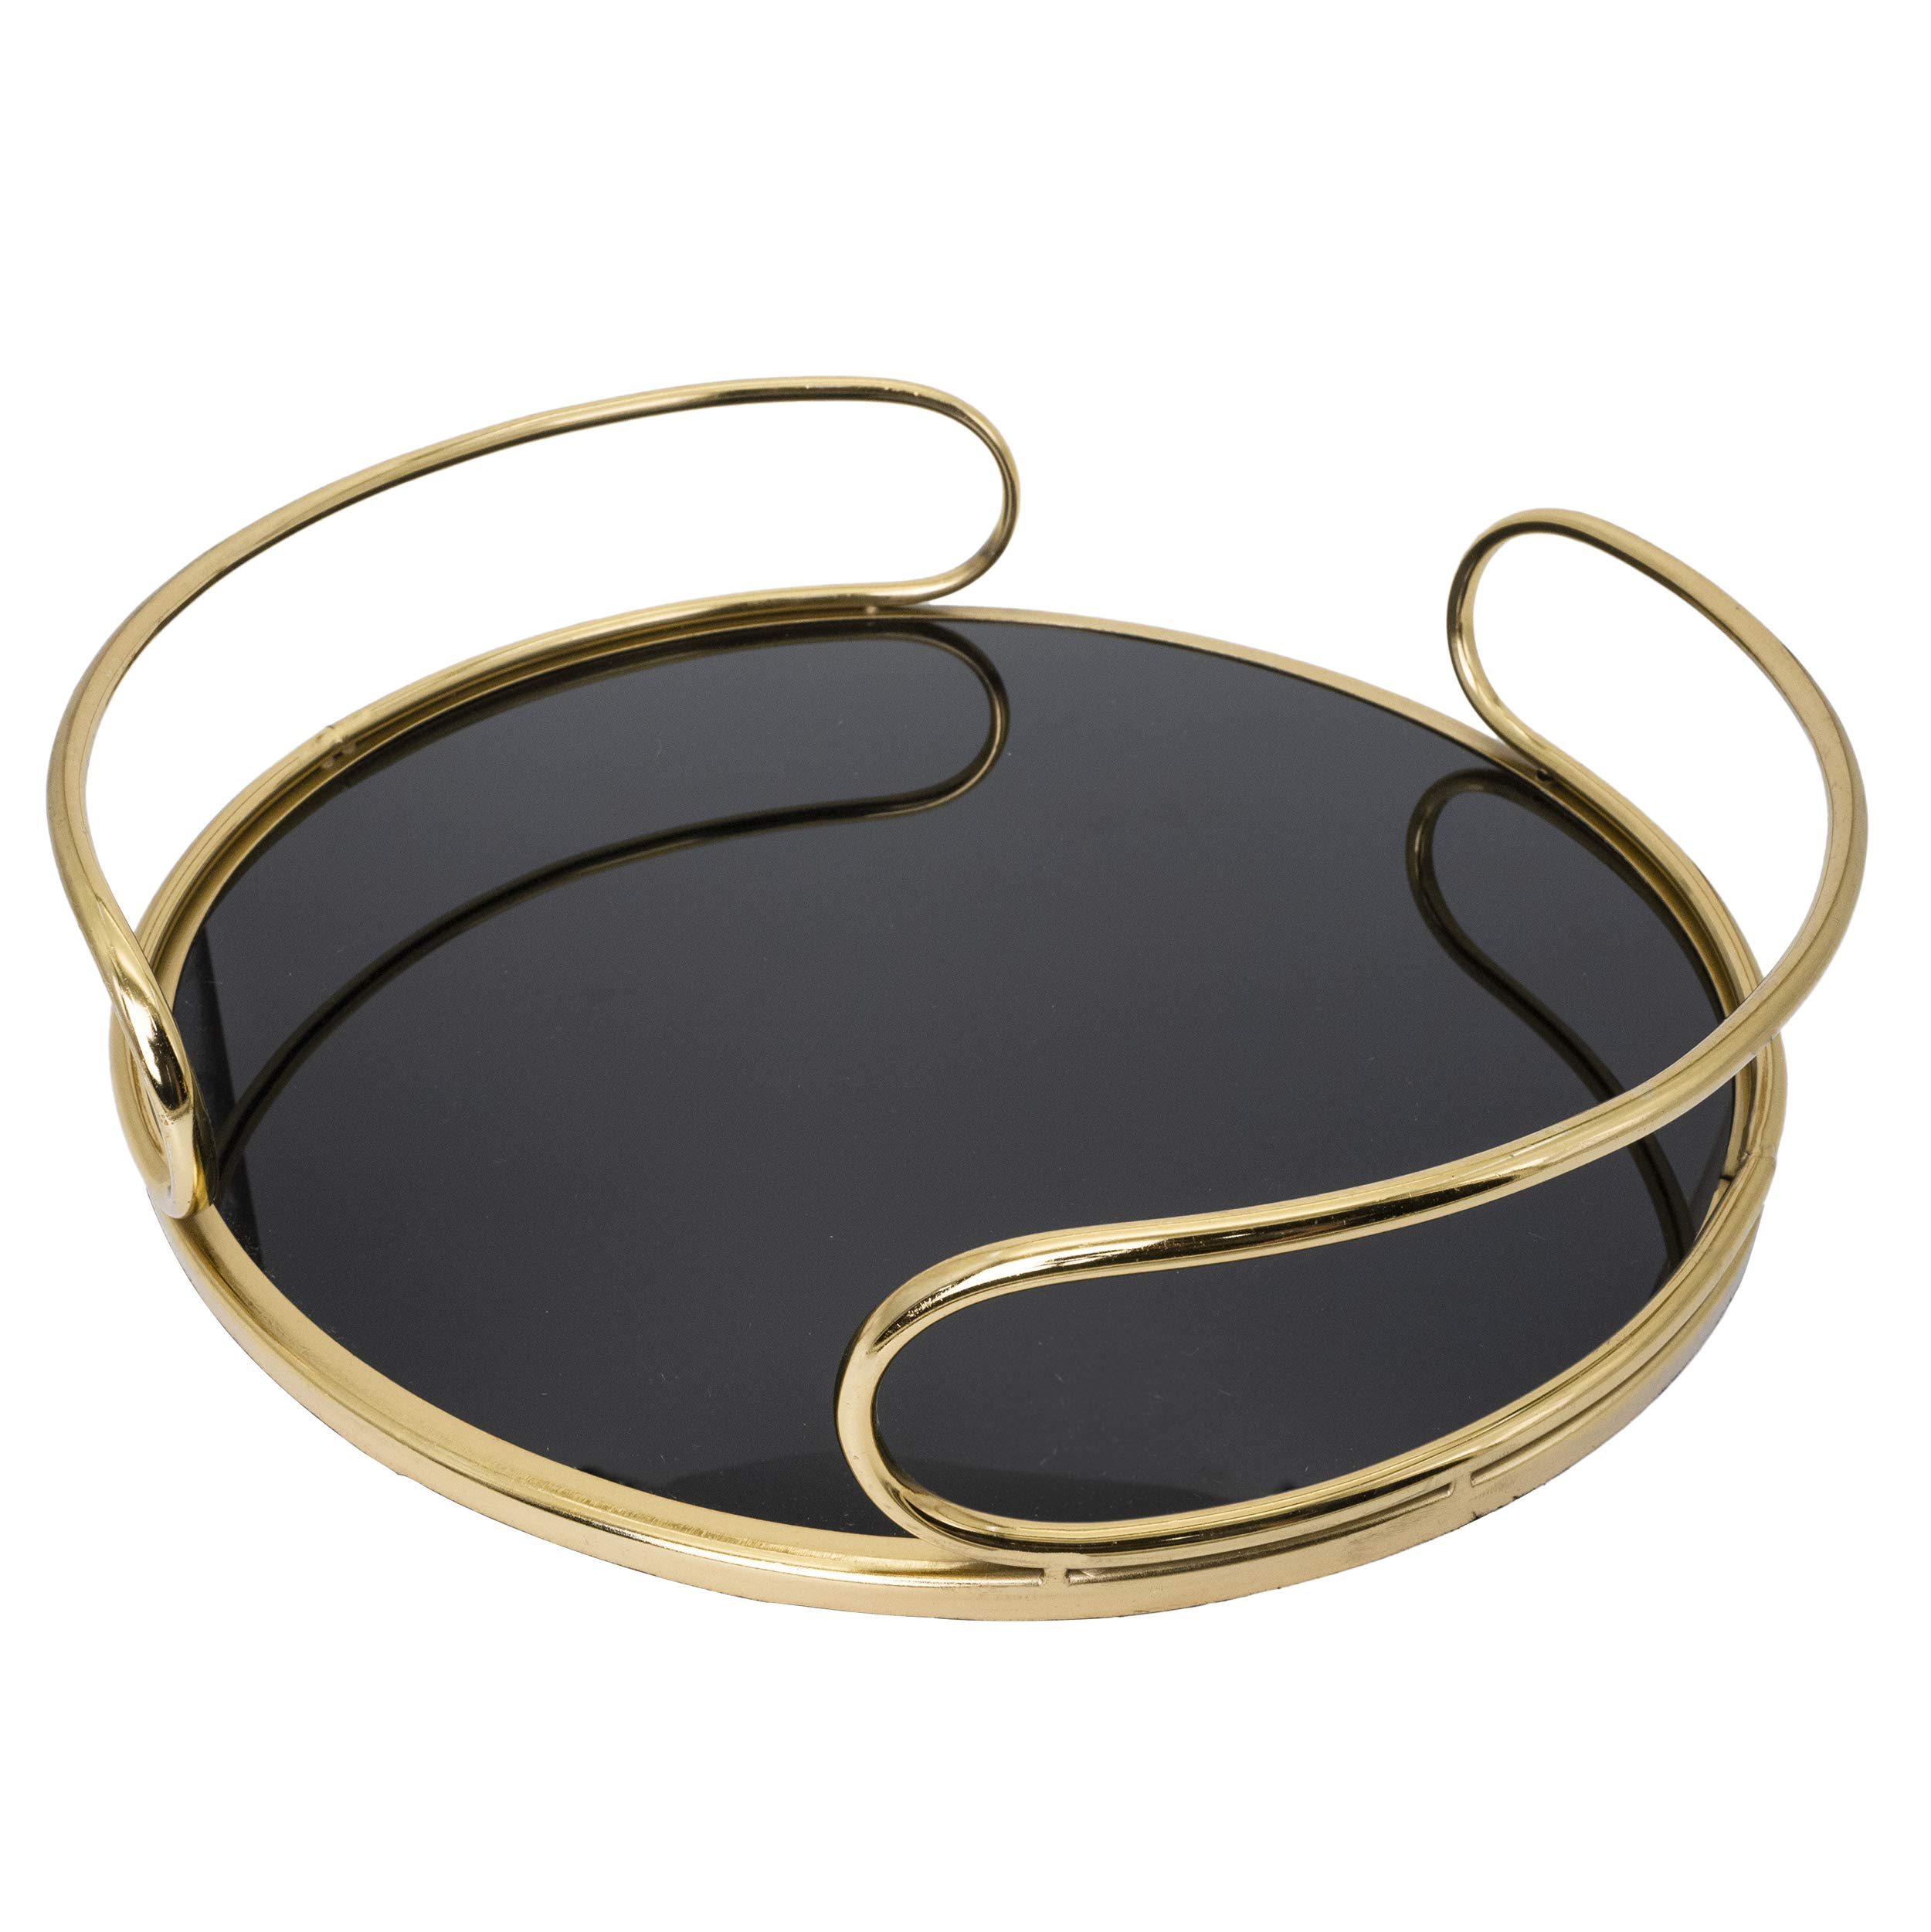 O-Plus Decorative Tray, Gold Metal Mirrored Round Tray with Diameter of 14 Inches (Black/White) by O-Plus